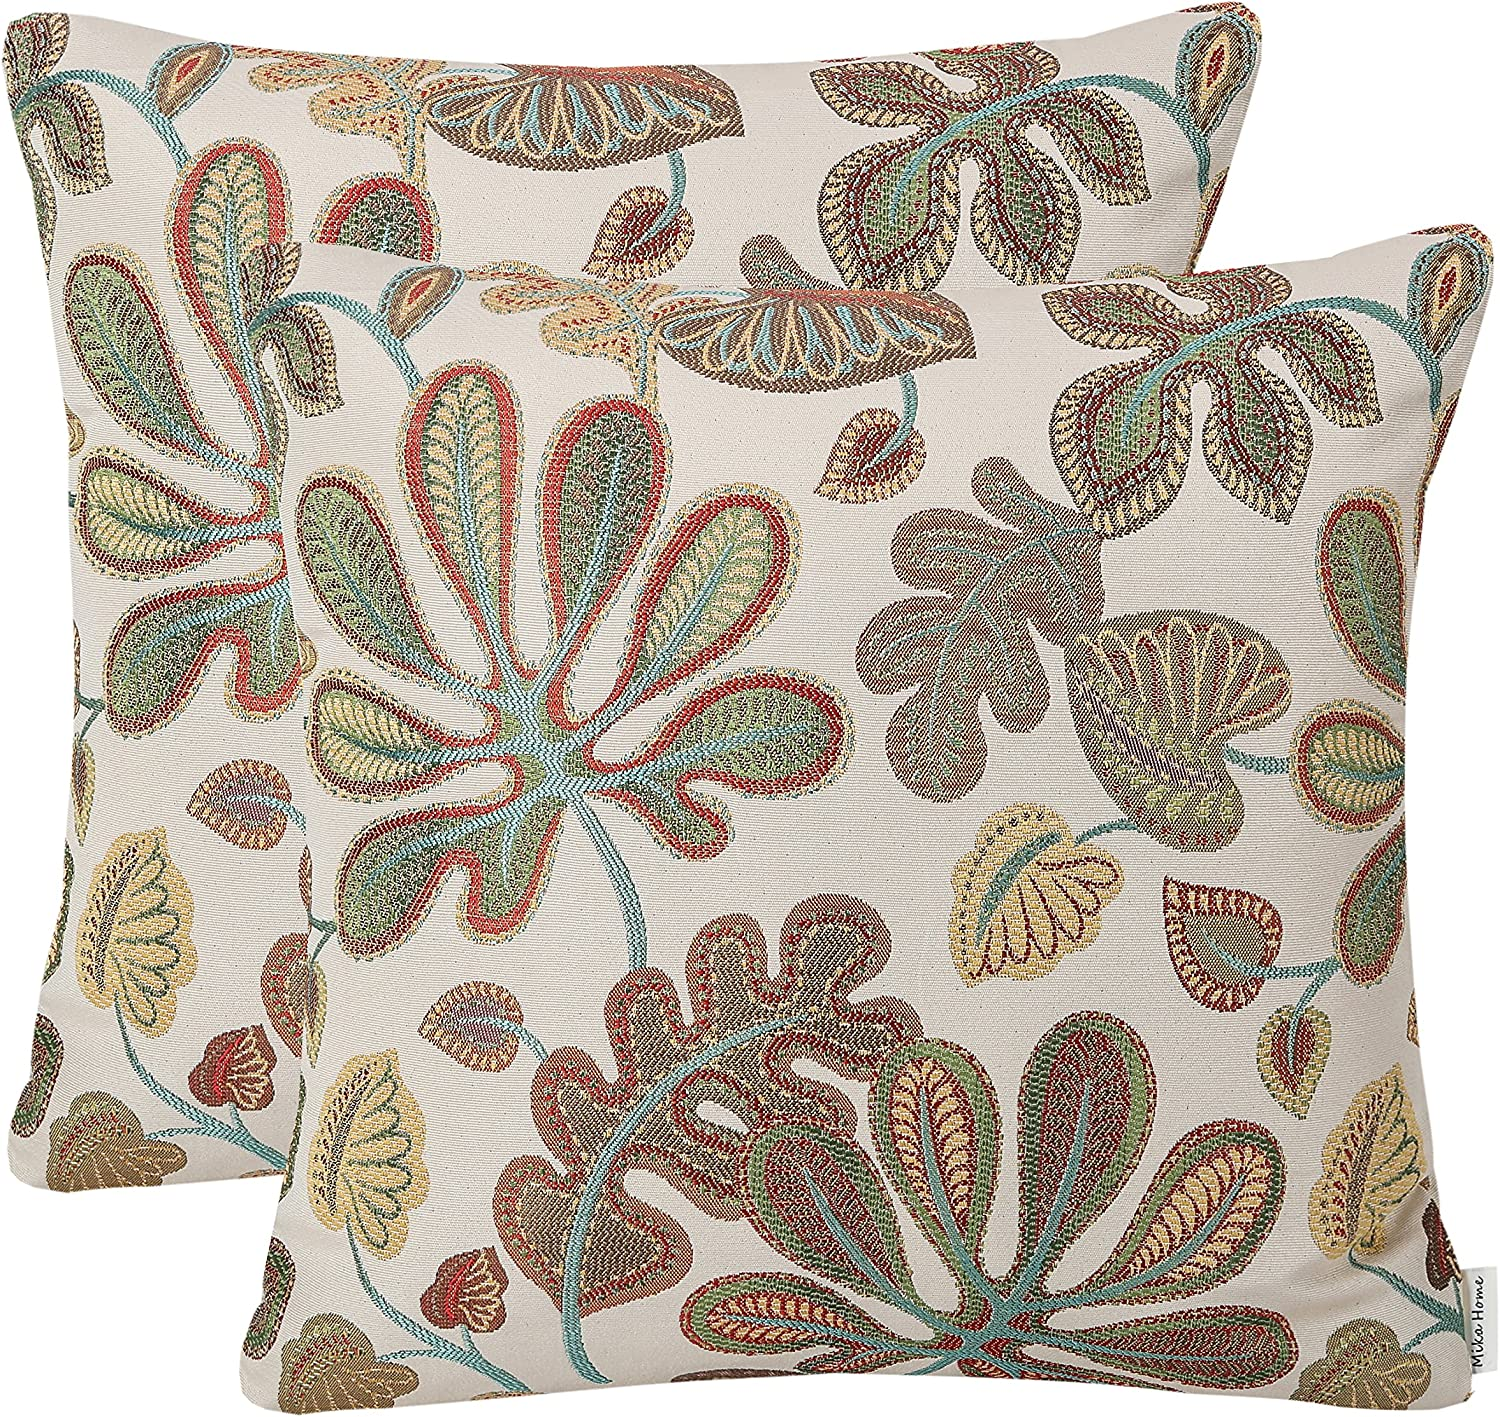 Mika Home Set of 2 Jacquard Tropical Leaf Pattern Throw Pillow Covers Decorative Pillowcase 20X20 Inches,Teal Cream